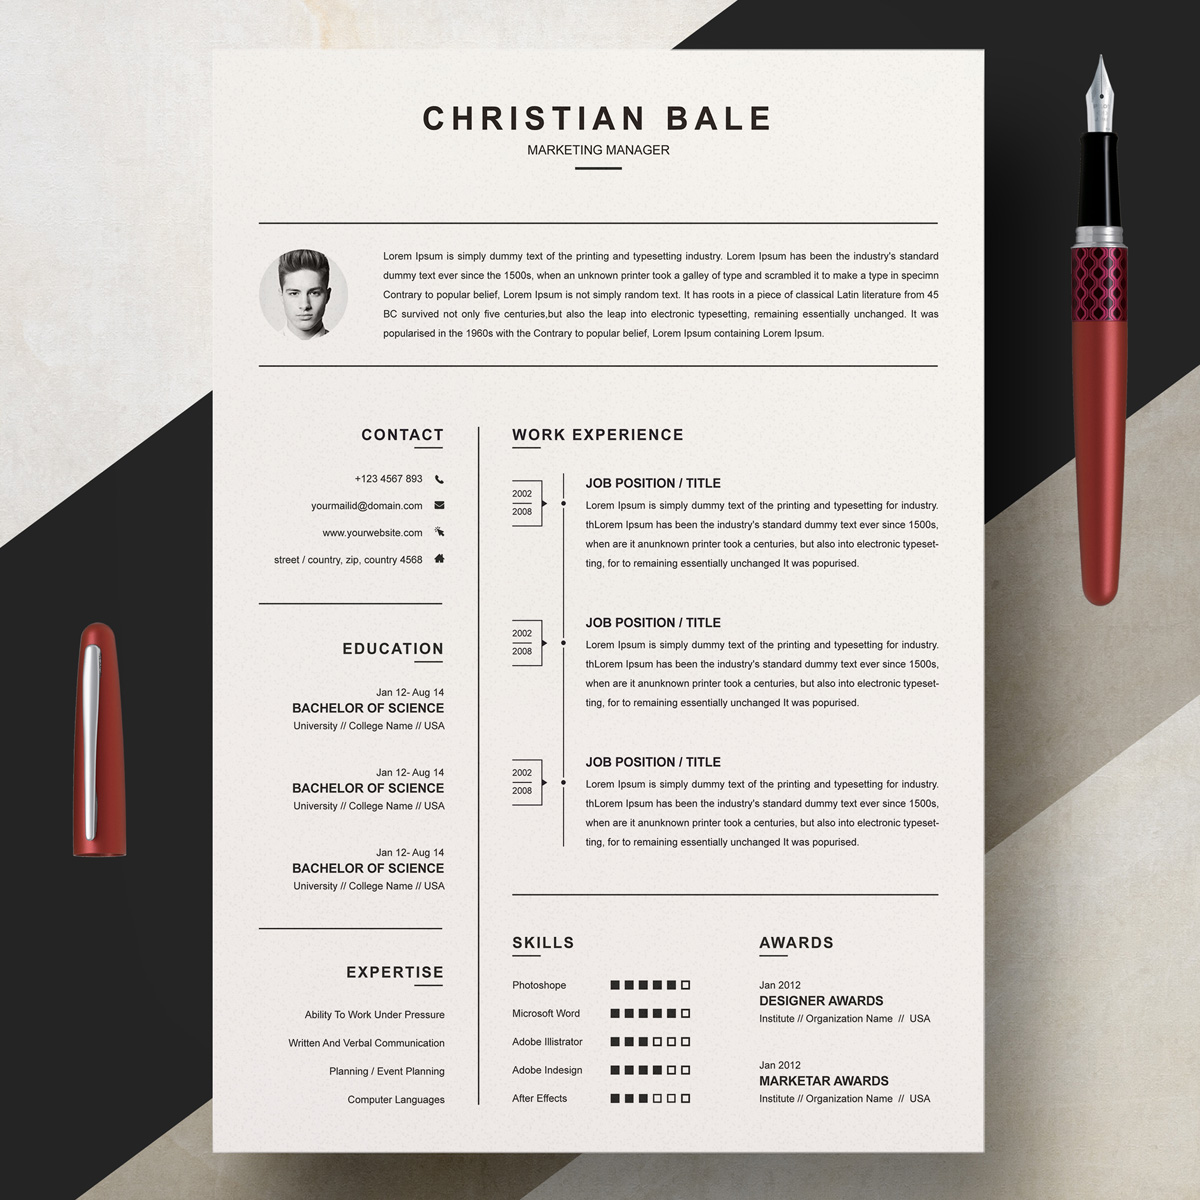 Christian Bale Resume Template